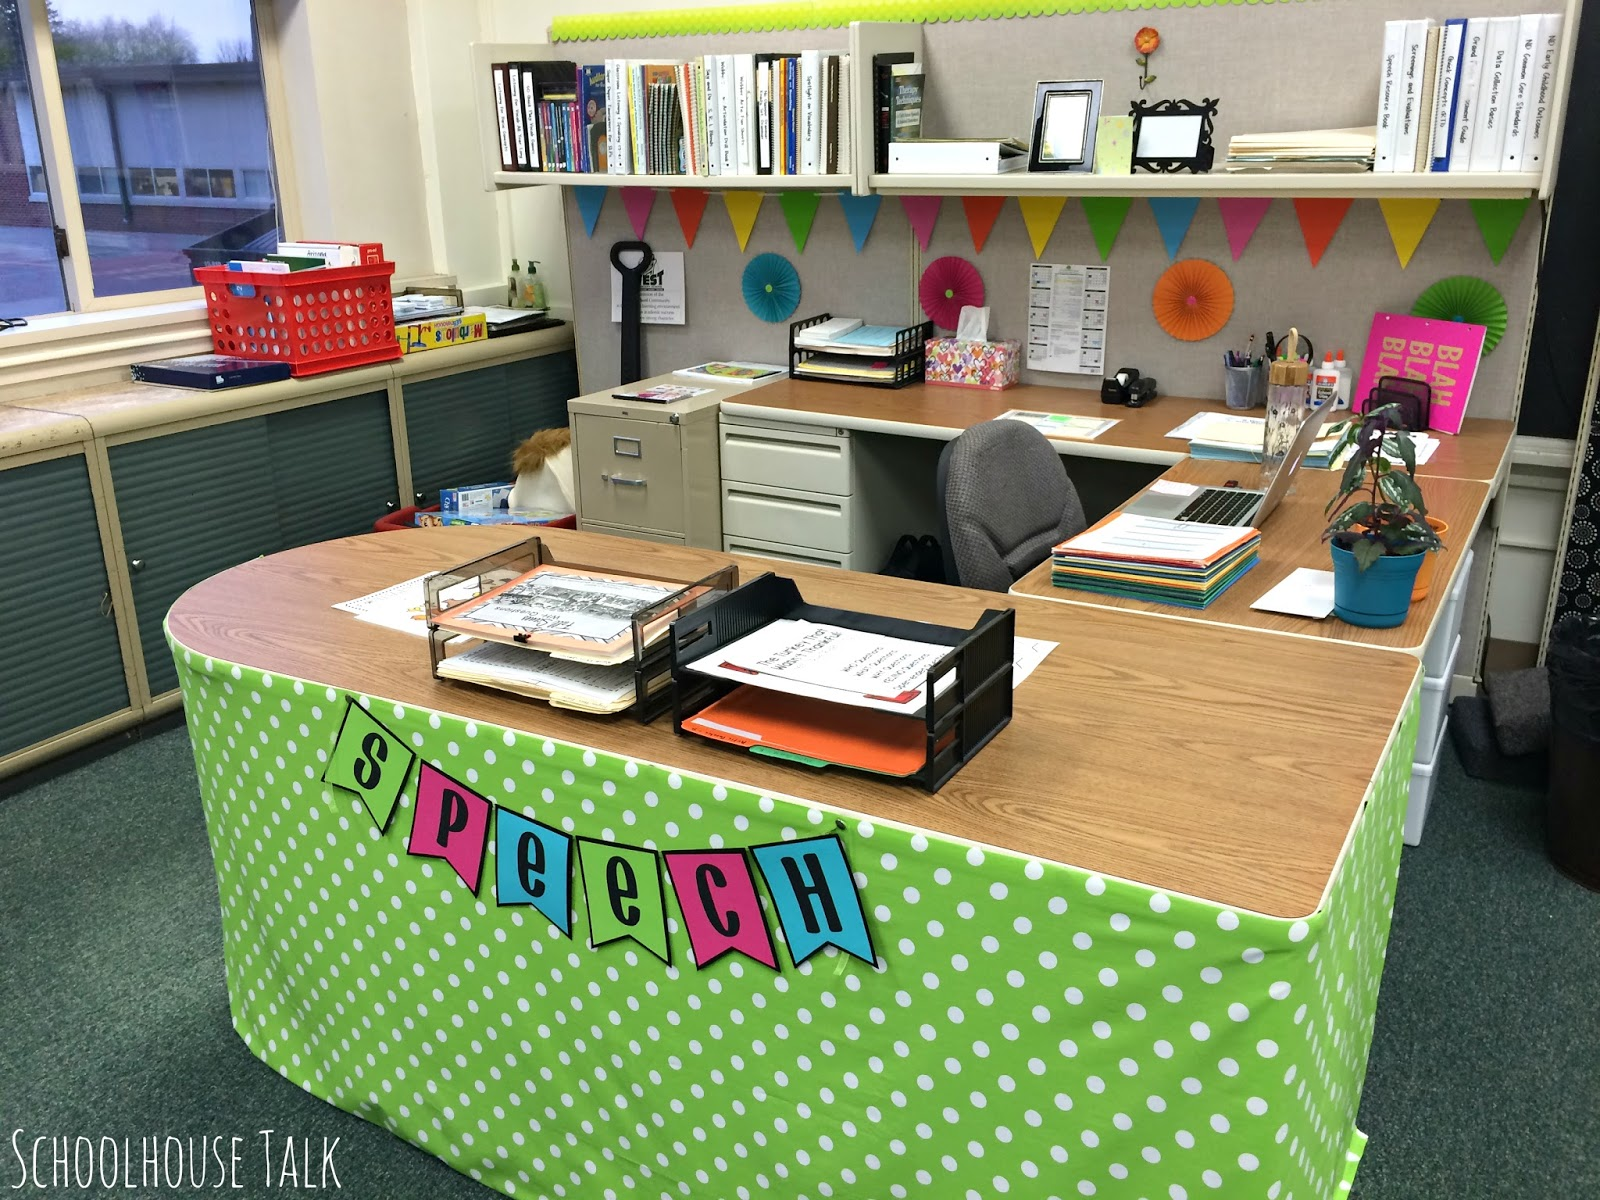 Schoolhouse Talk!: 2015 Speech Therapy Room Tour (Part 2)